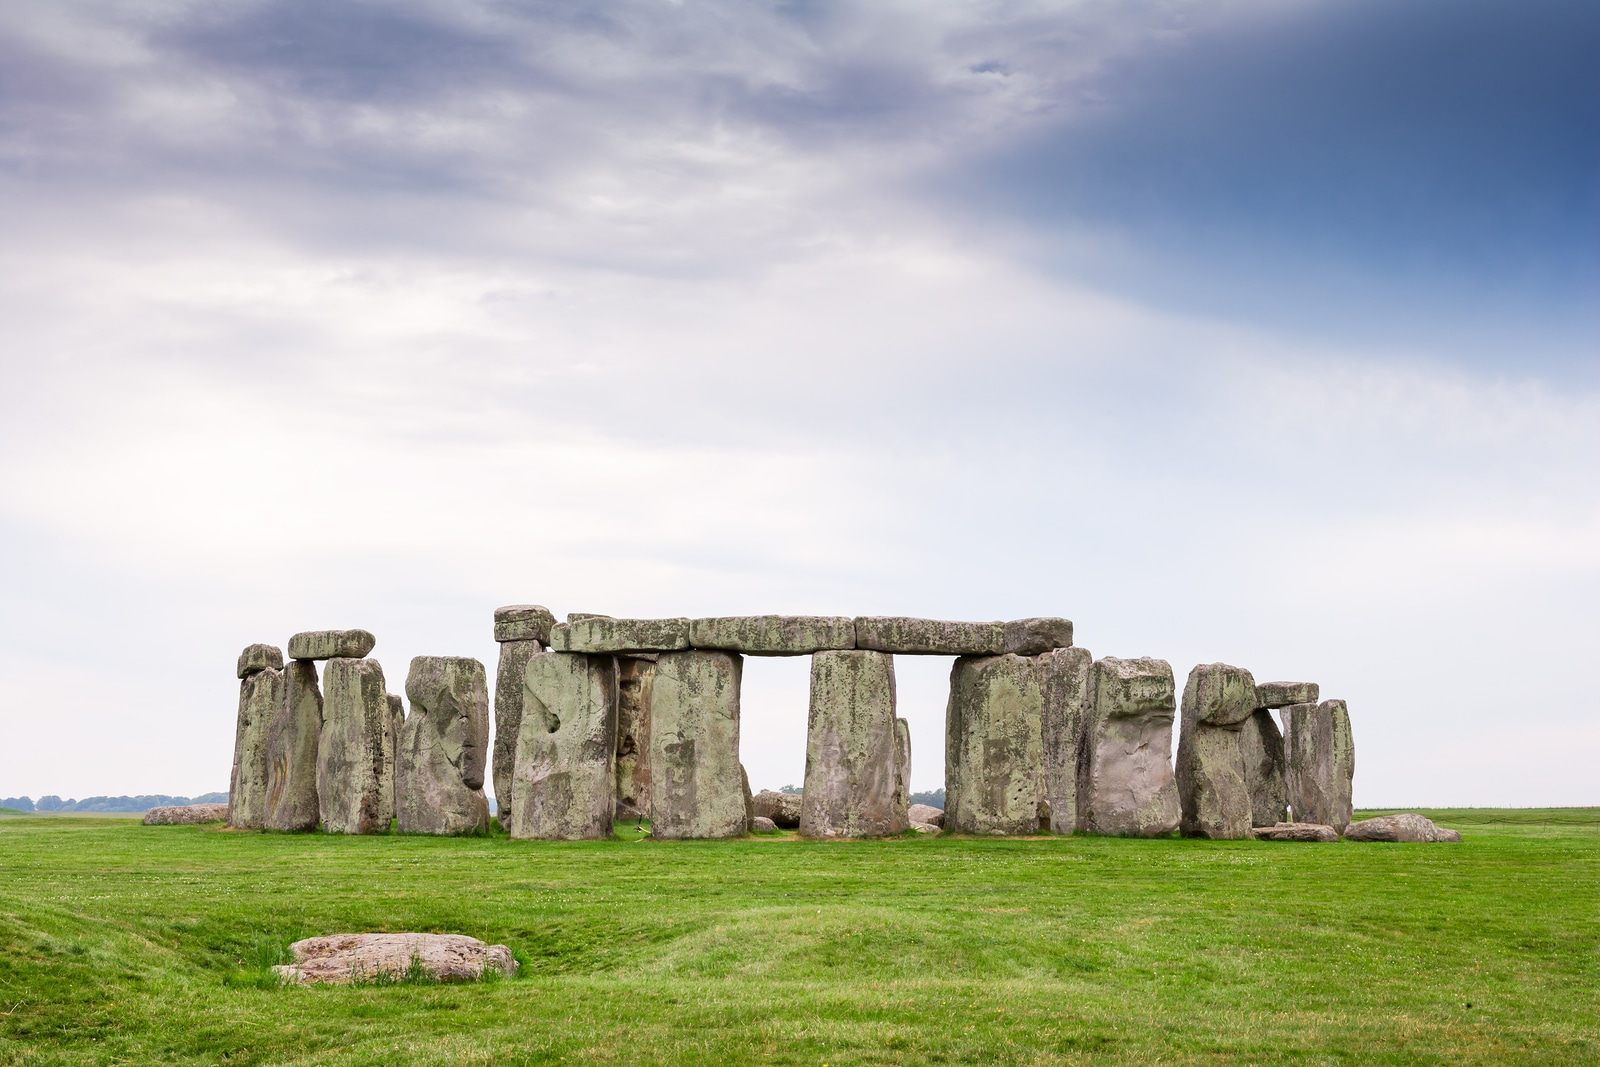 Stonehenge is famous prehistoric landmark and World Heritage Site. Stonehenge on Salisbury Plain Wiltshire England